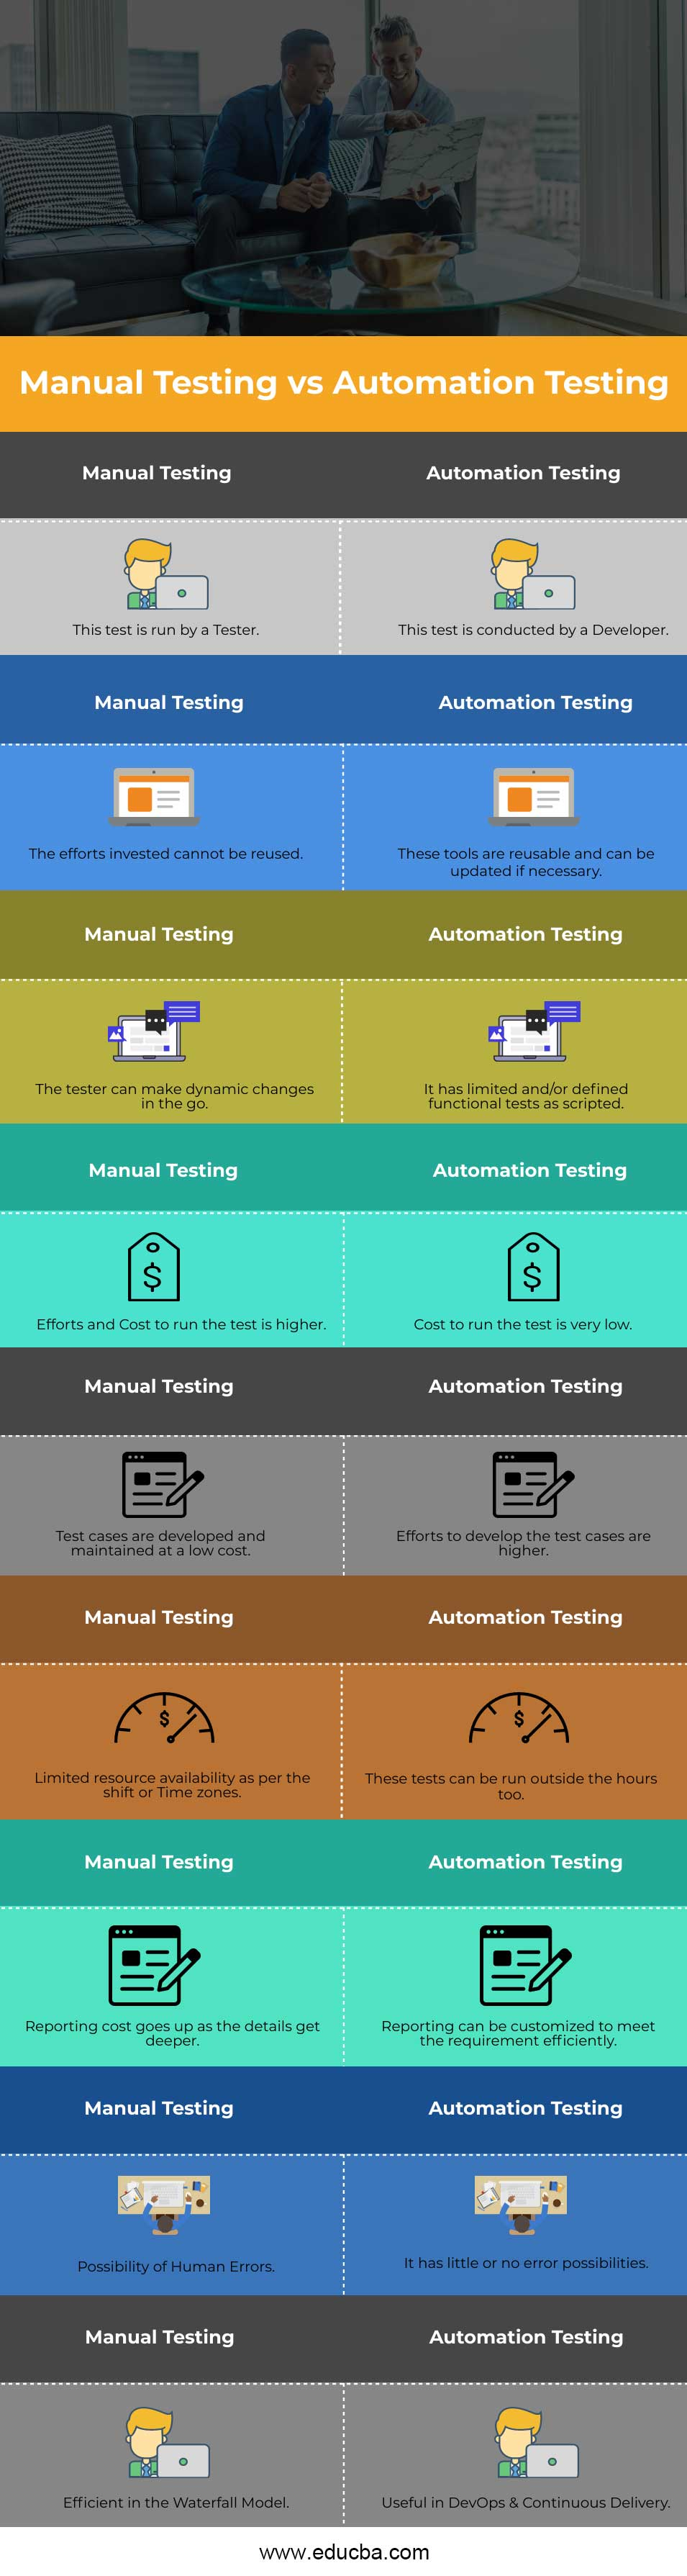 Manual Testing vs Automation Testing Info